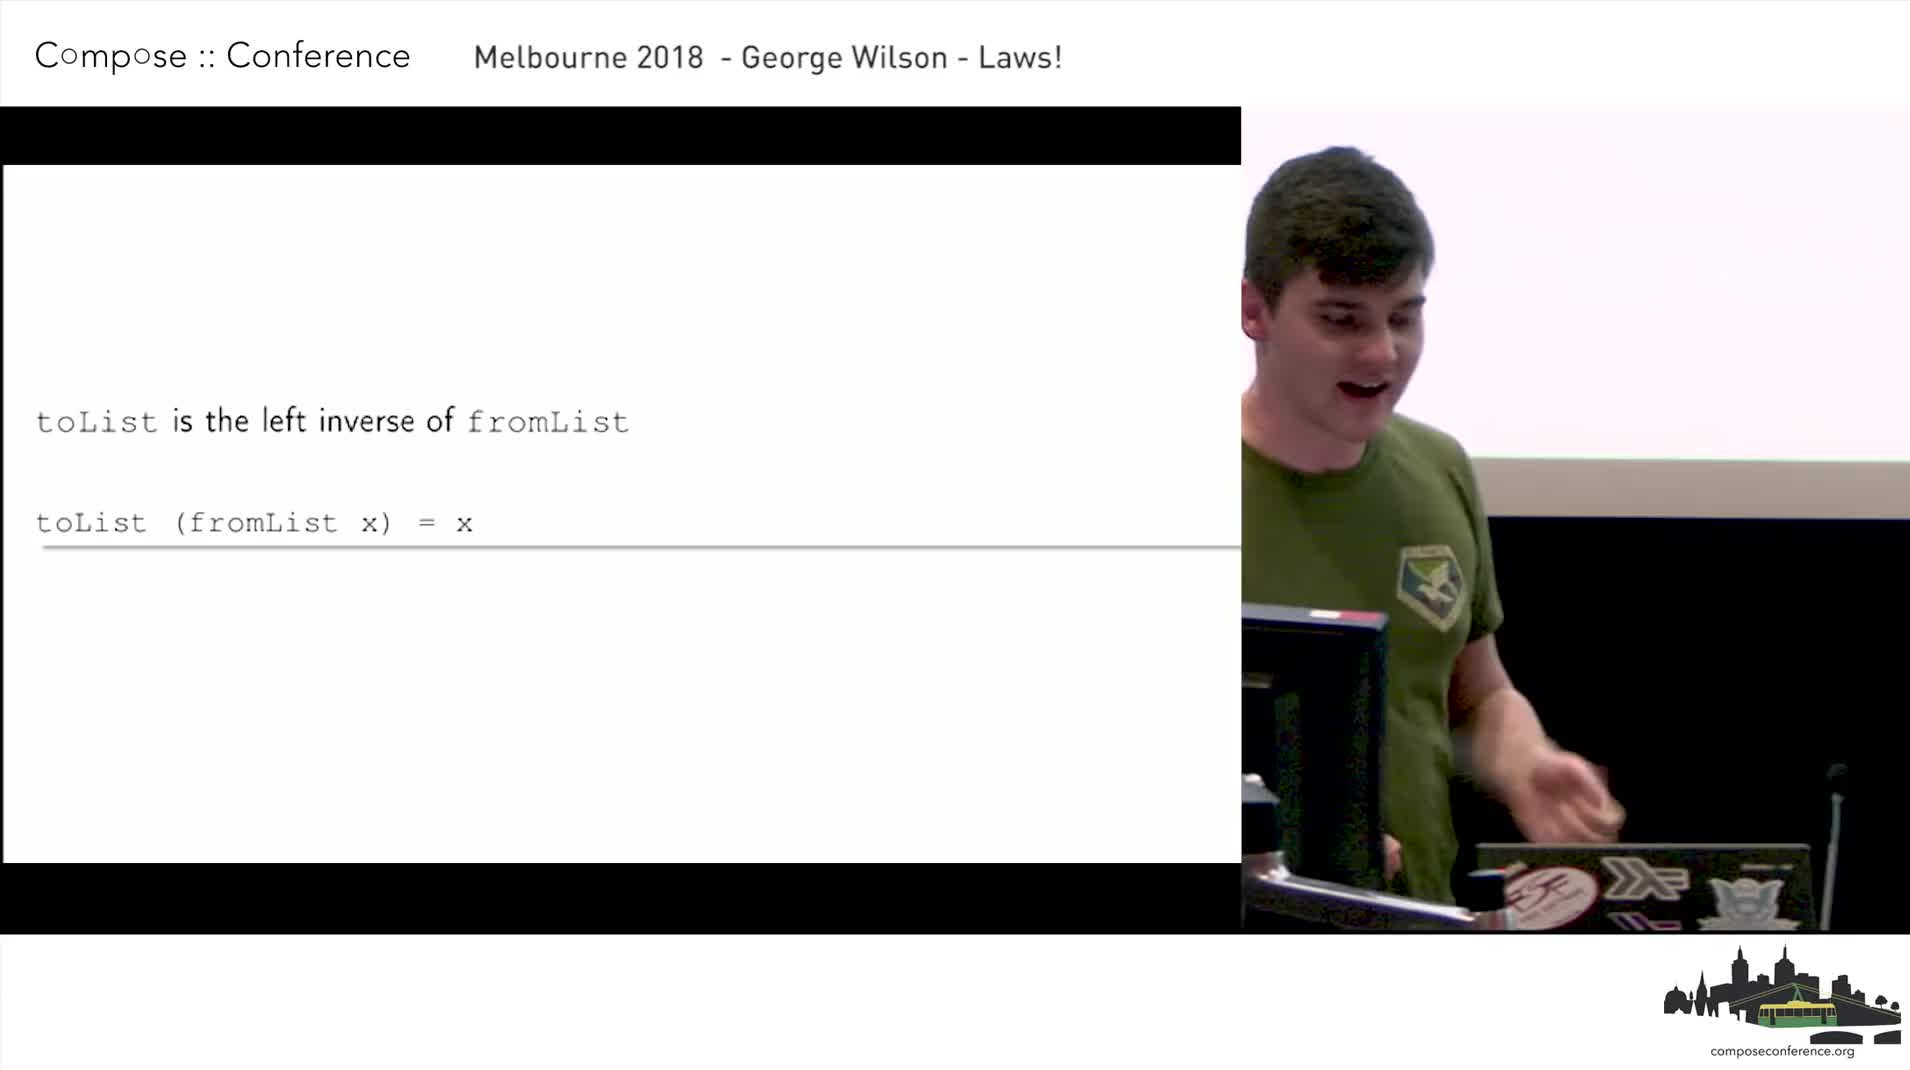 Laws! - George Wilson - Compose Melbourne 2018